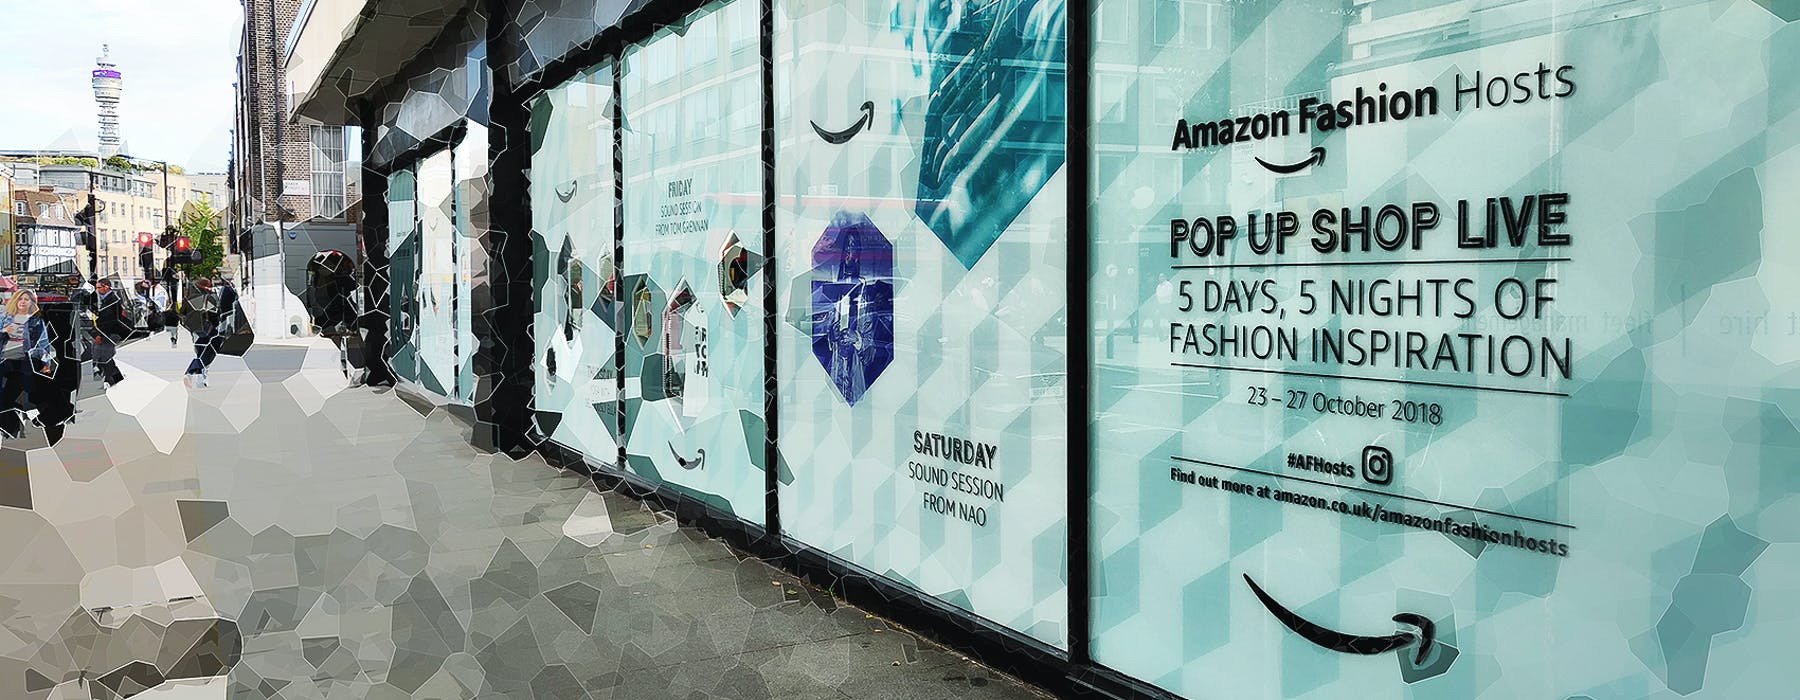 Amazon Fashion's Pop Up Shop Live sets out to influence the influencers